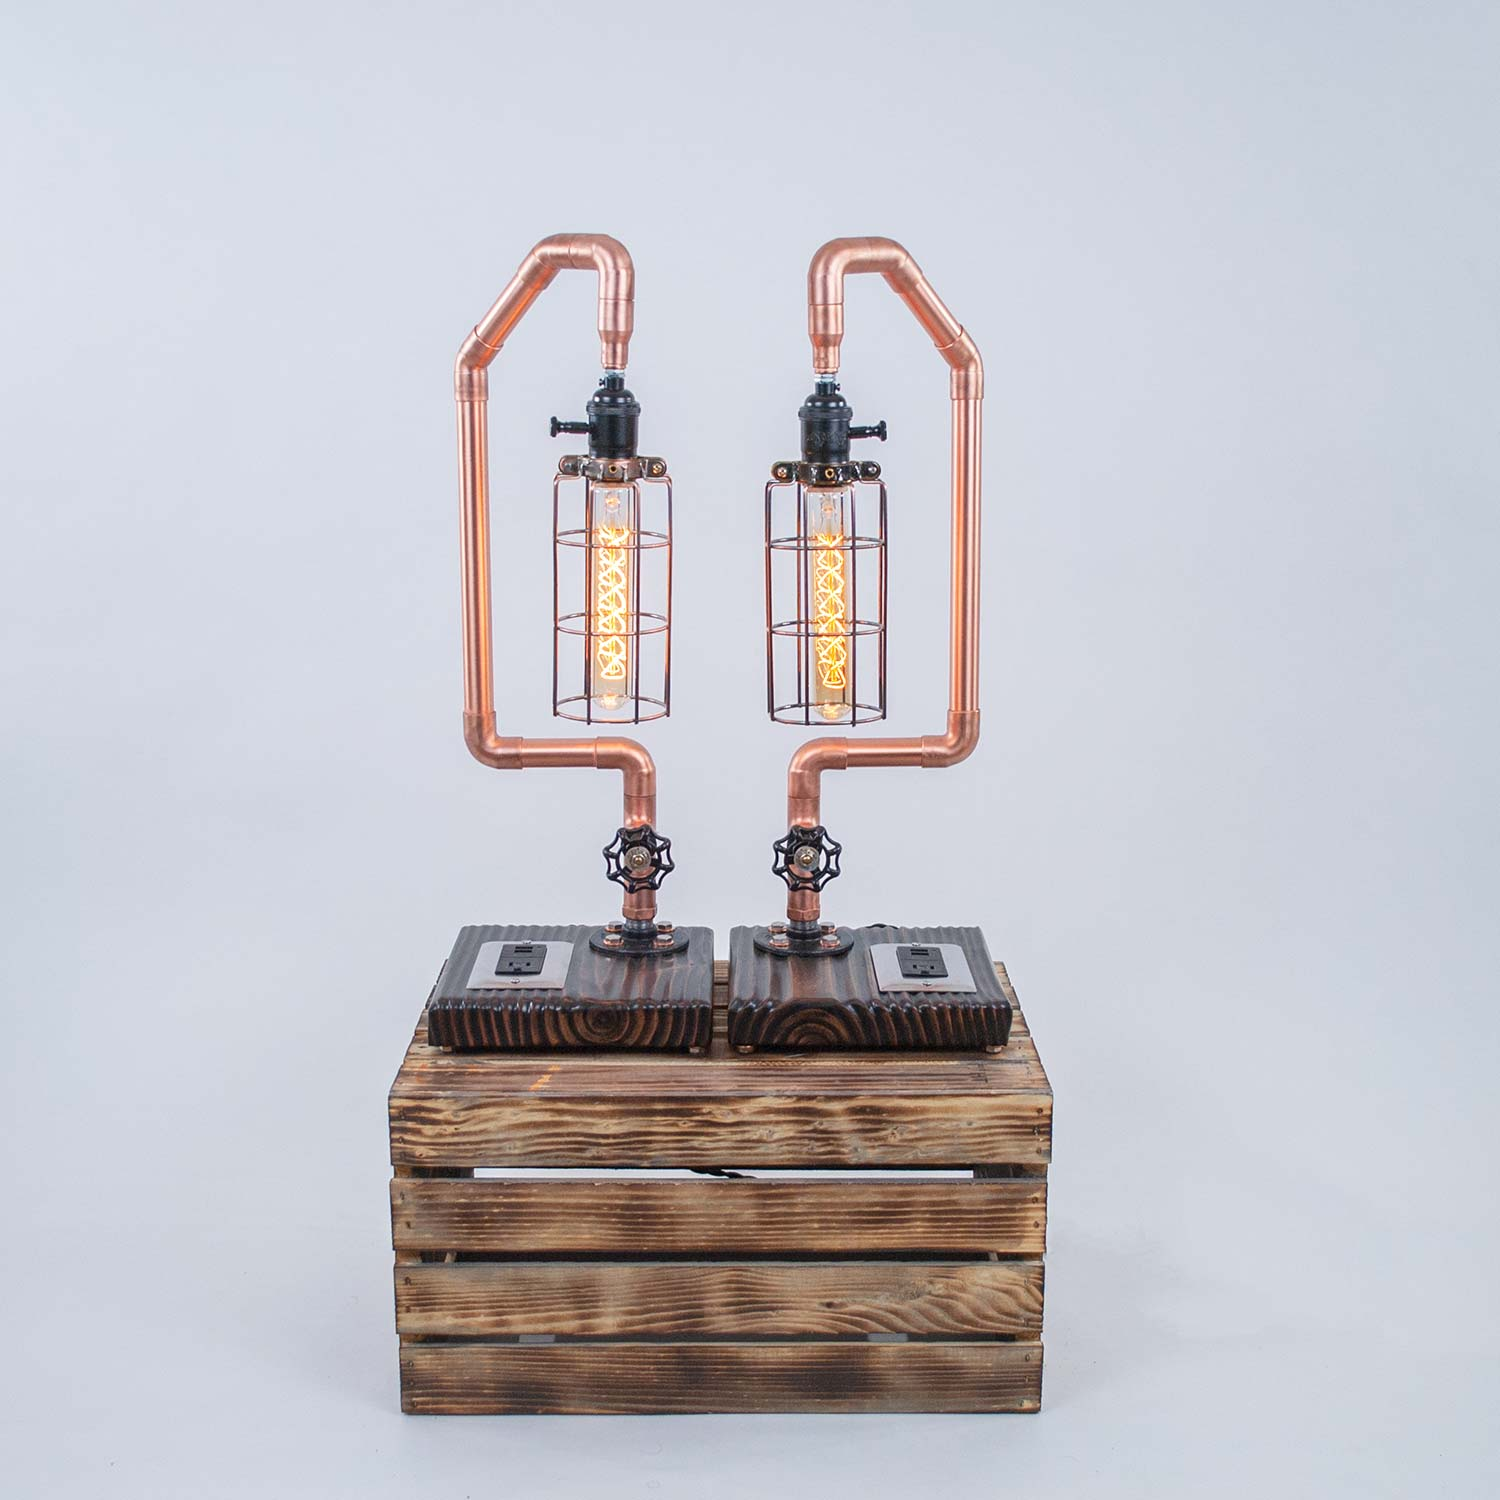 Encaged | Copper Pipe Bedside Lamp with USB